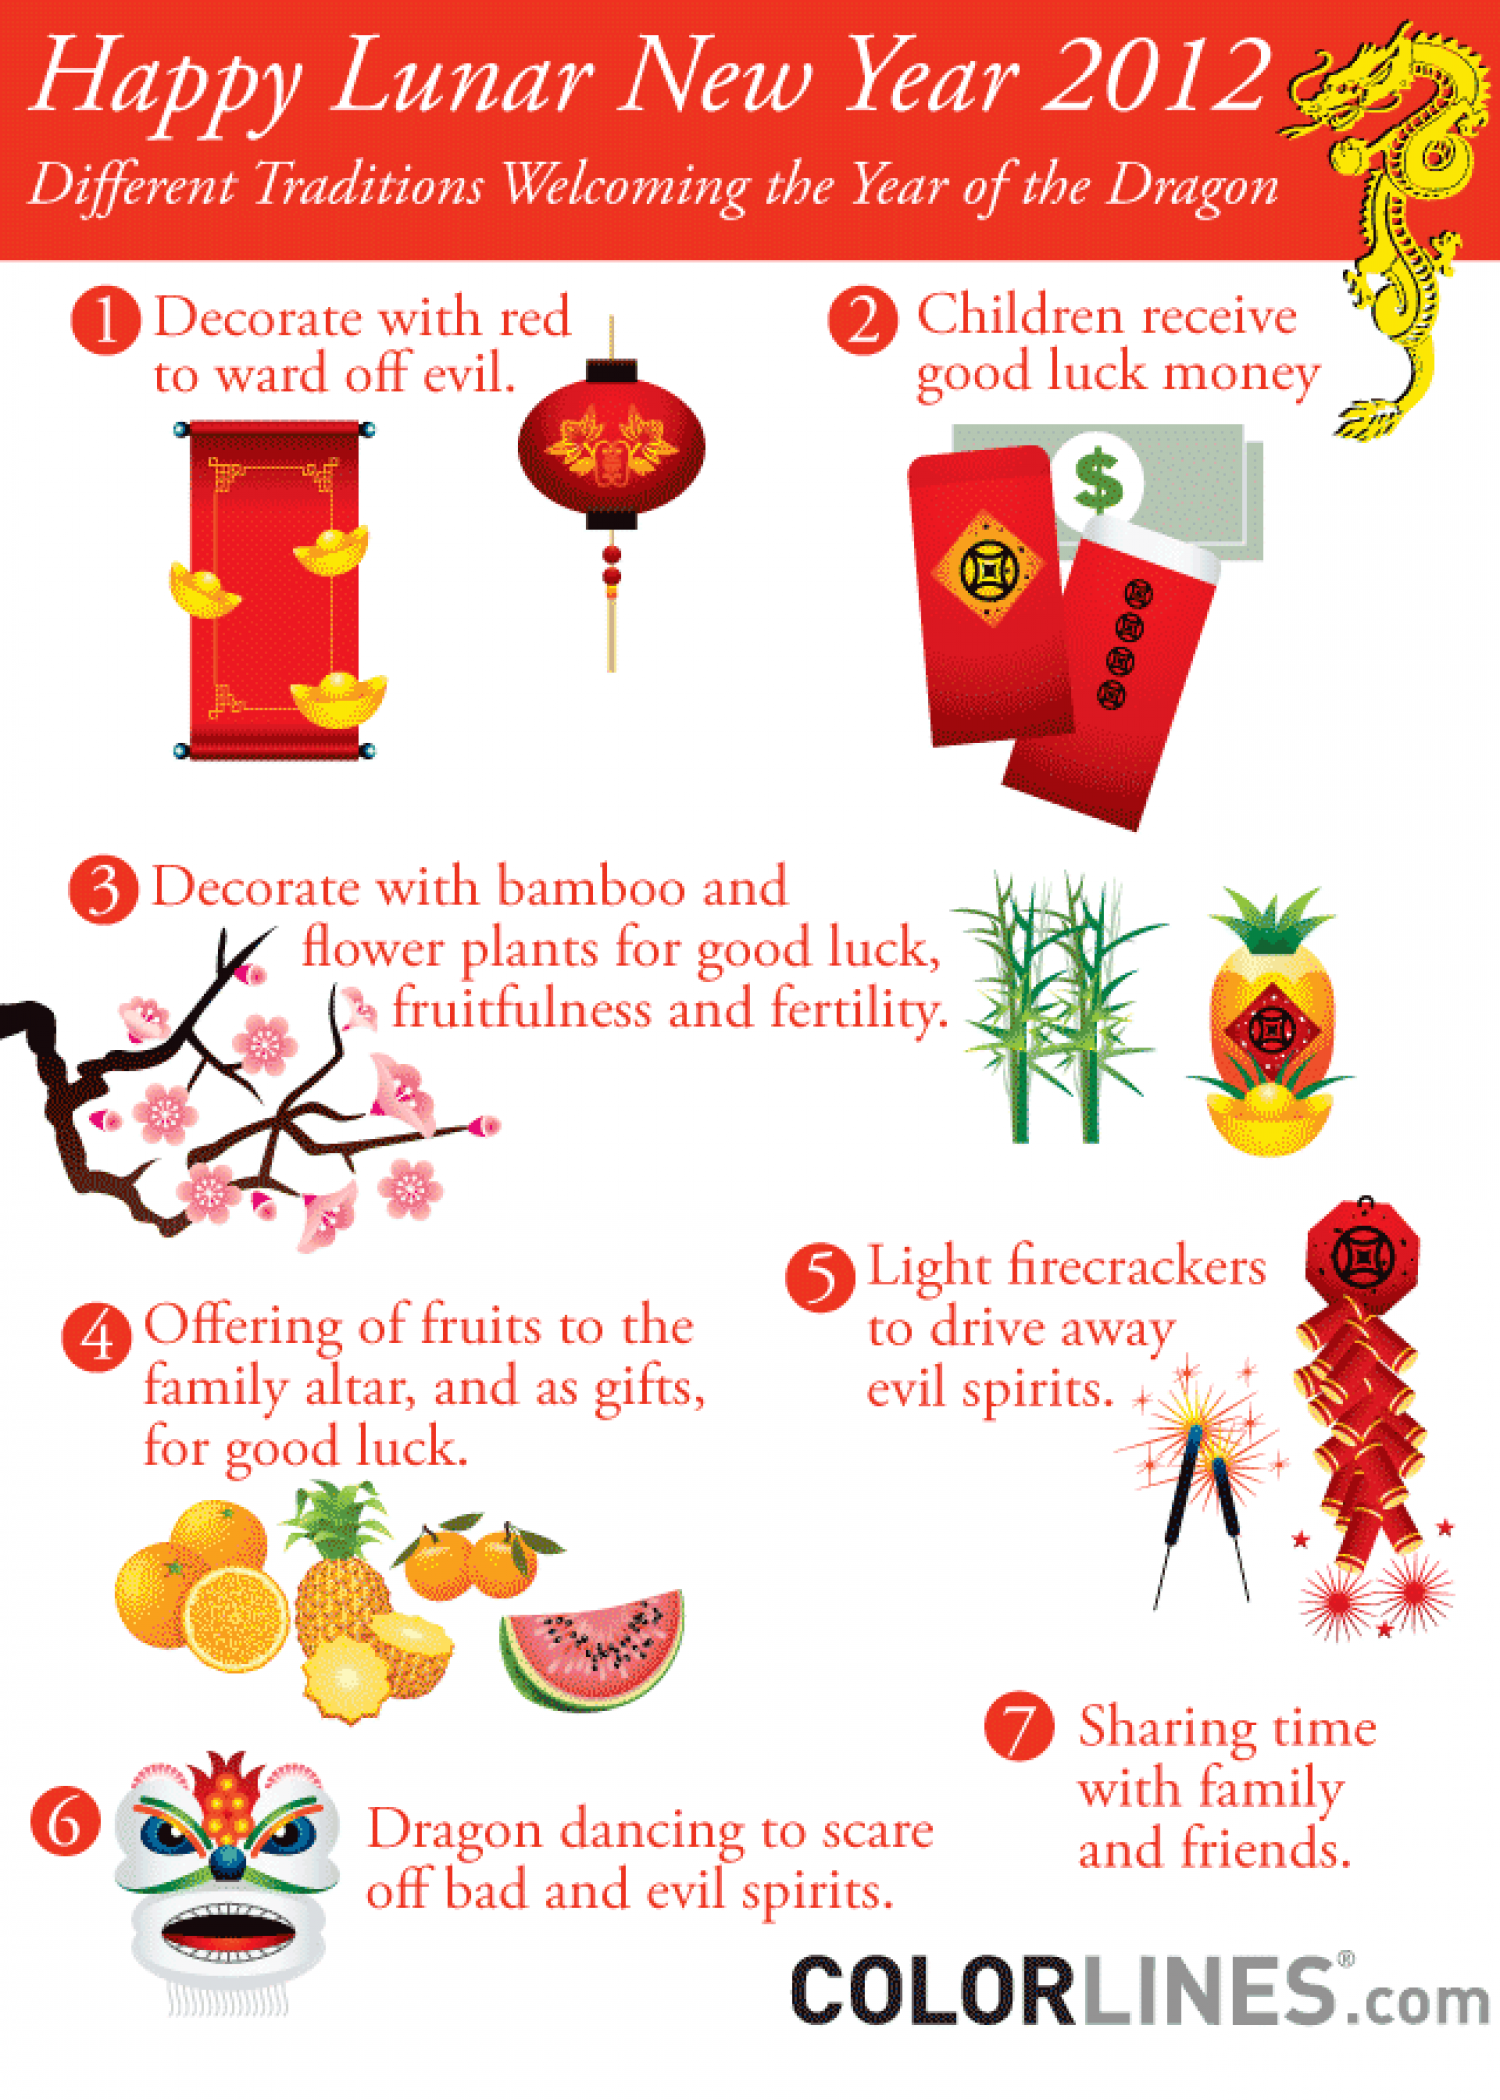 happy lunar new year 2012 infographic - Chinese New Year 2012